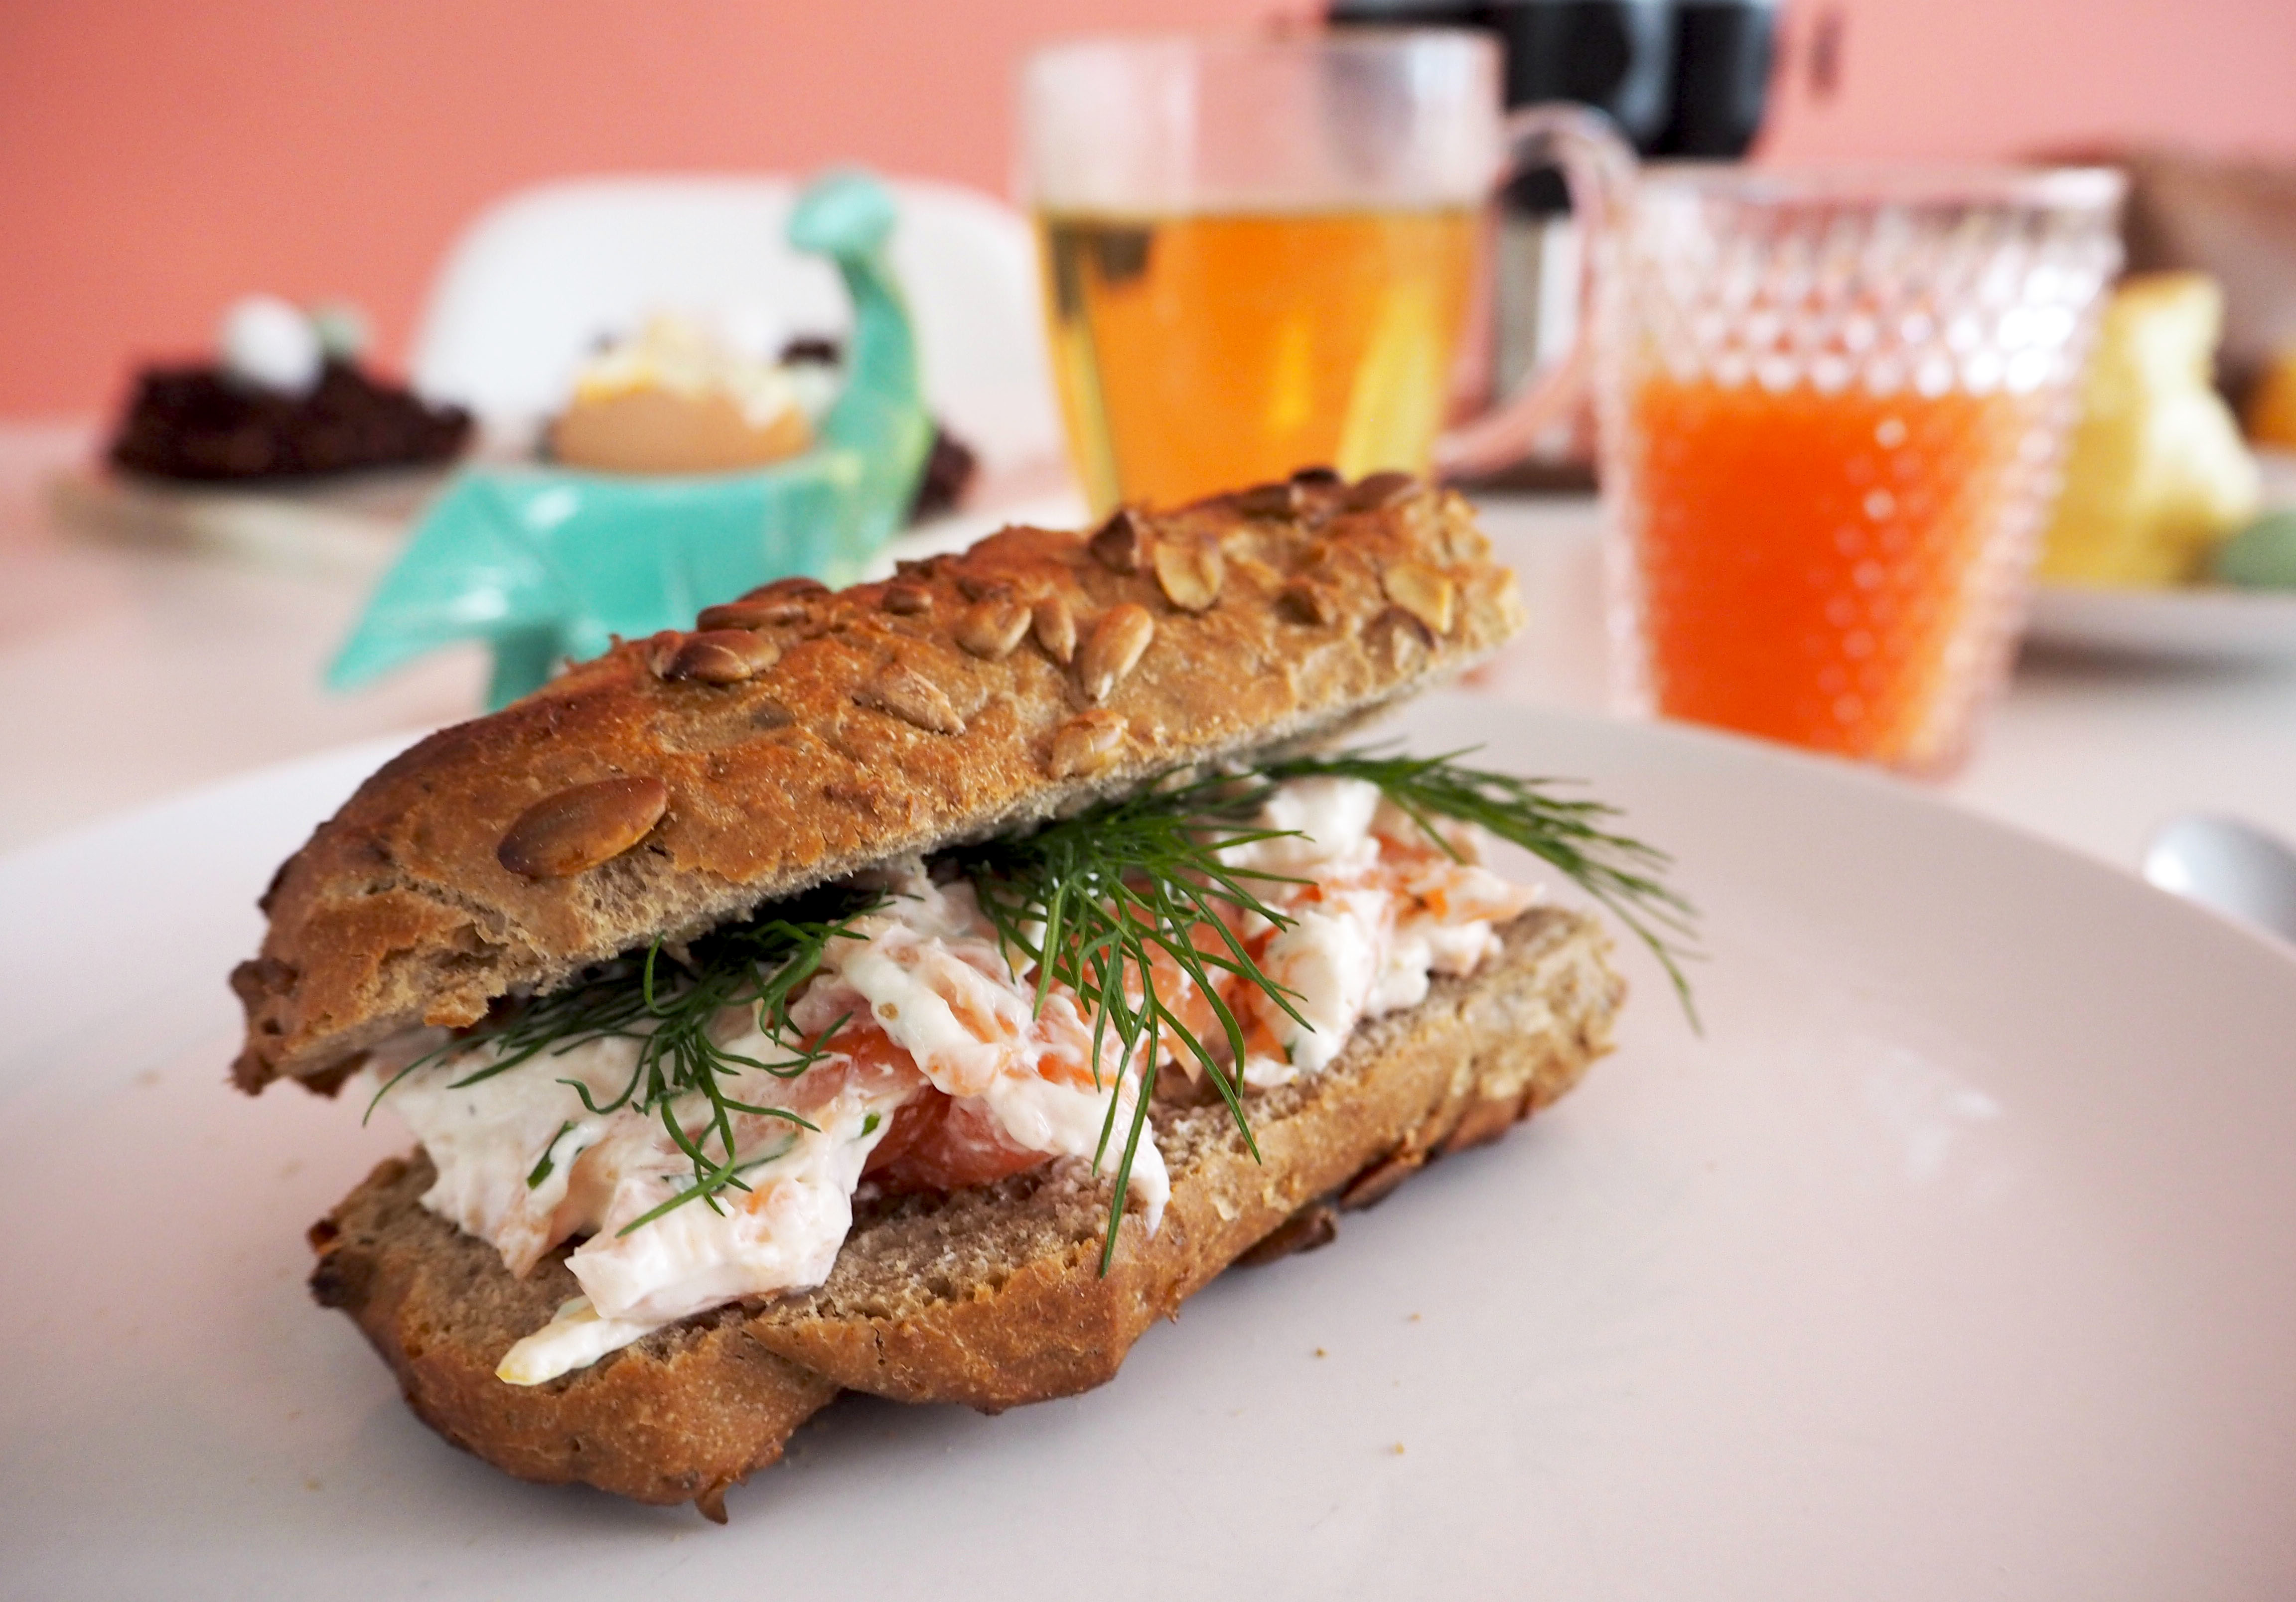 lunchgerecht: zalm- roomkaas spread